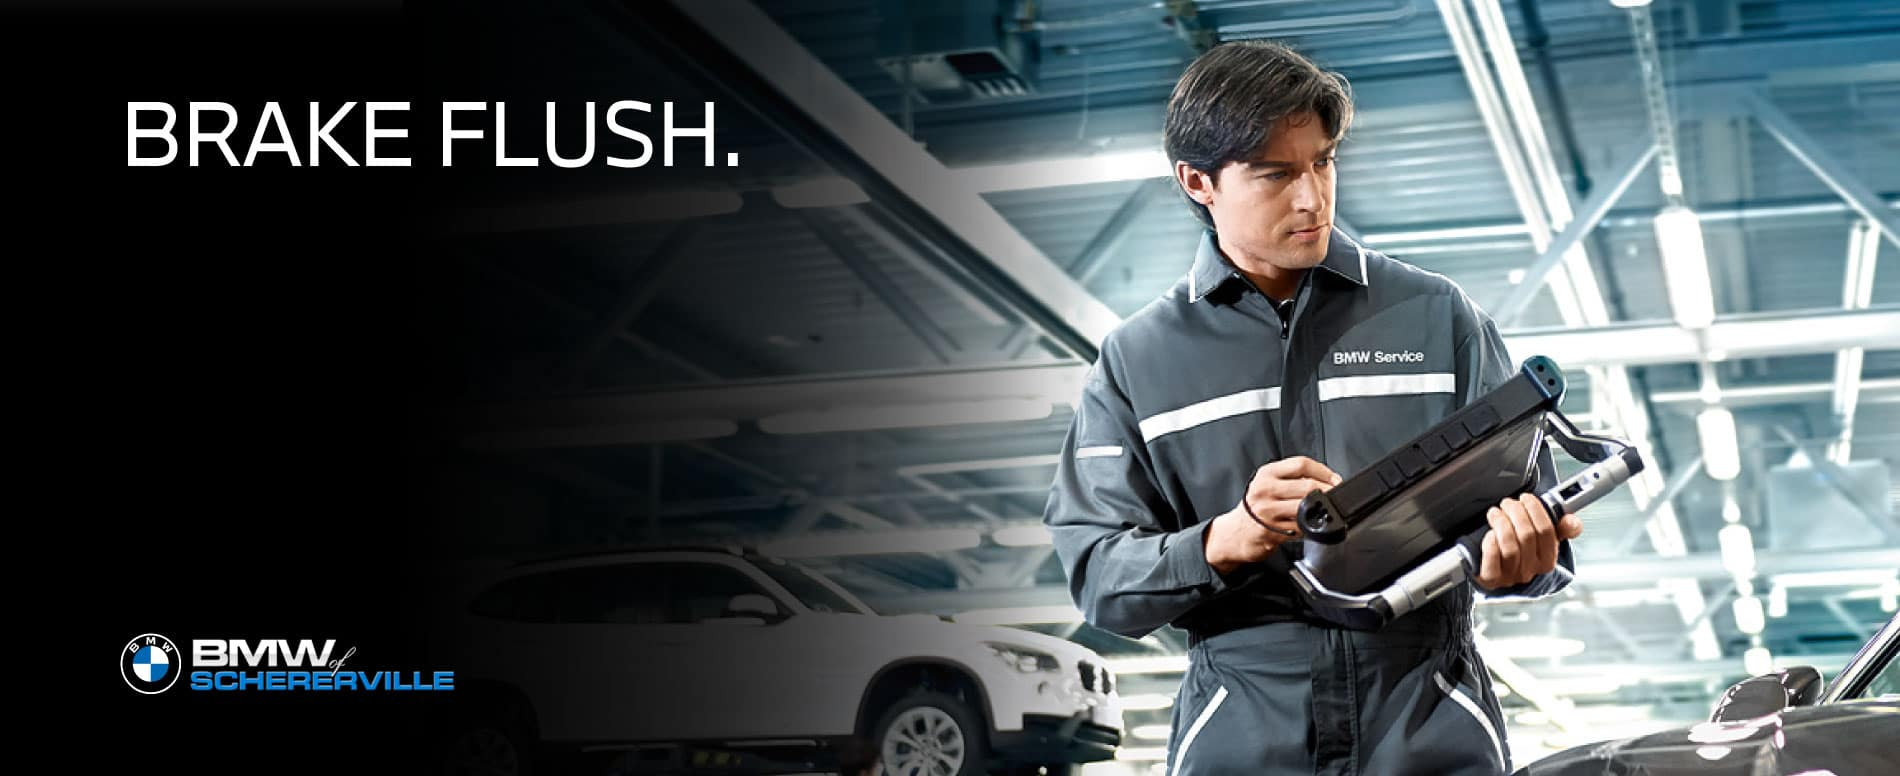 Image that reads 'Brake Flush' and has BMW Technician overlaid with monitoring device in hand